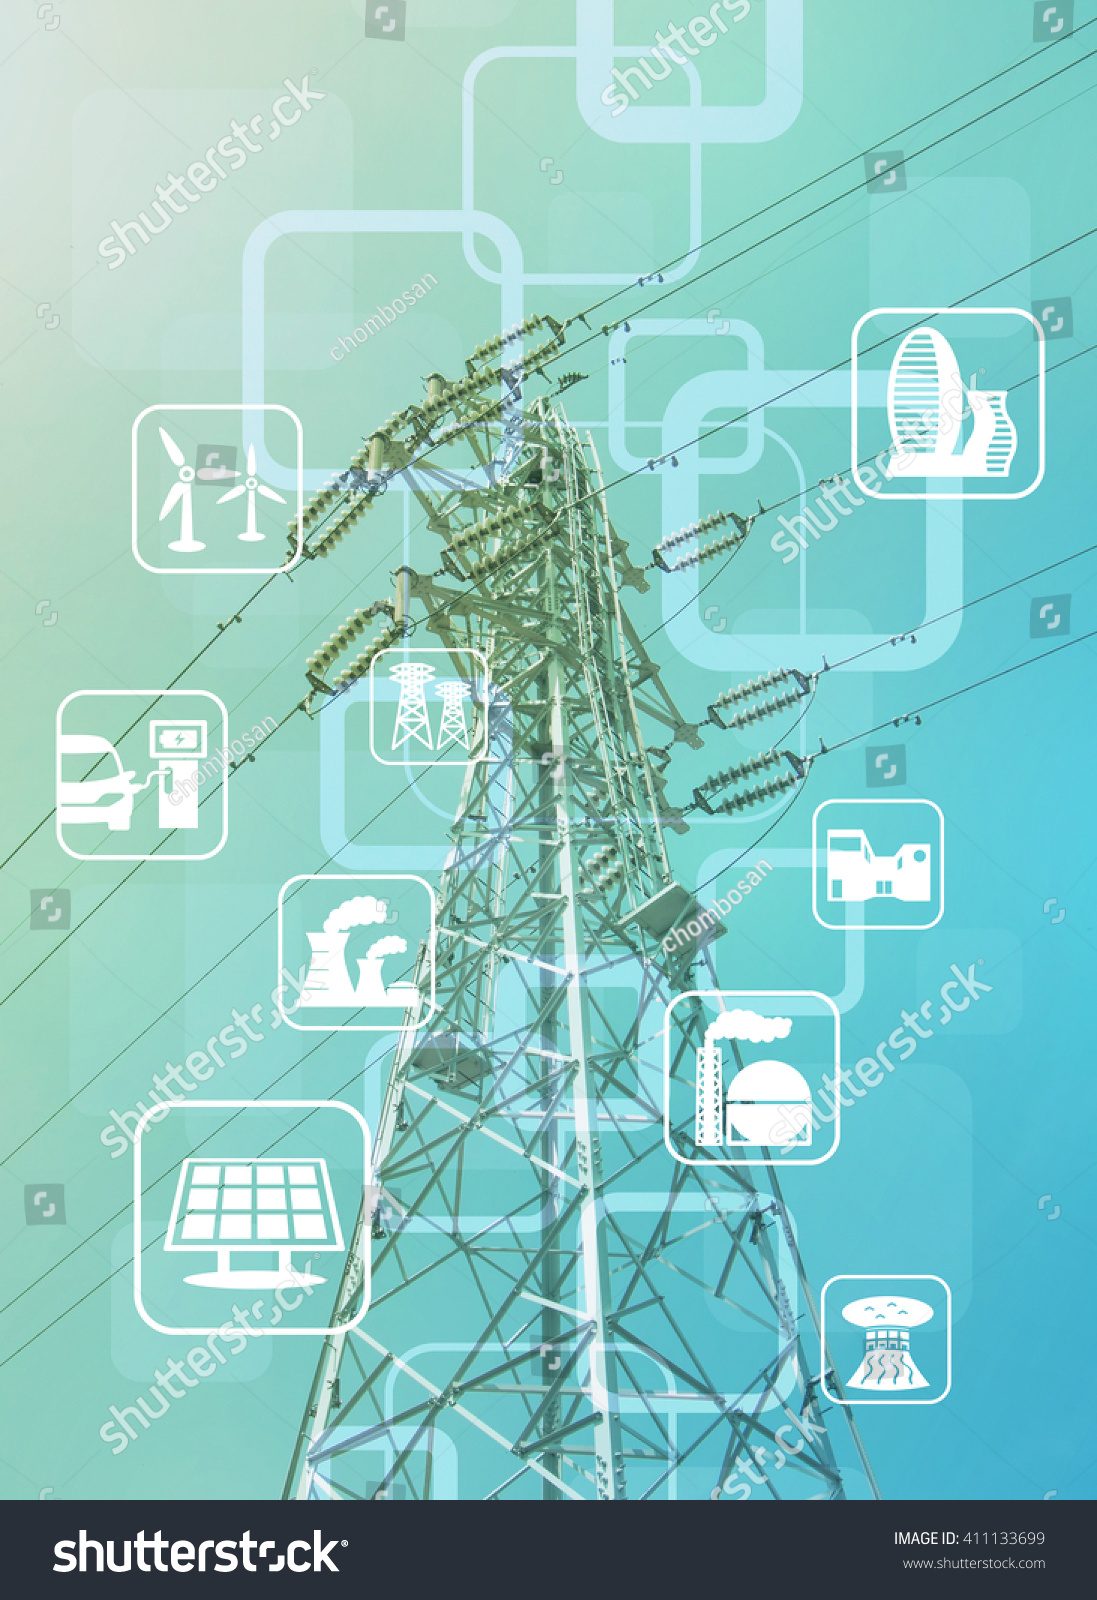 hight resolution of power transmission tower and smart energy smart grid renewable energy icons abstract image